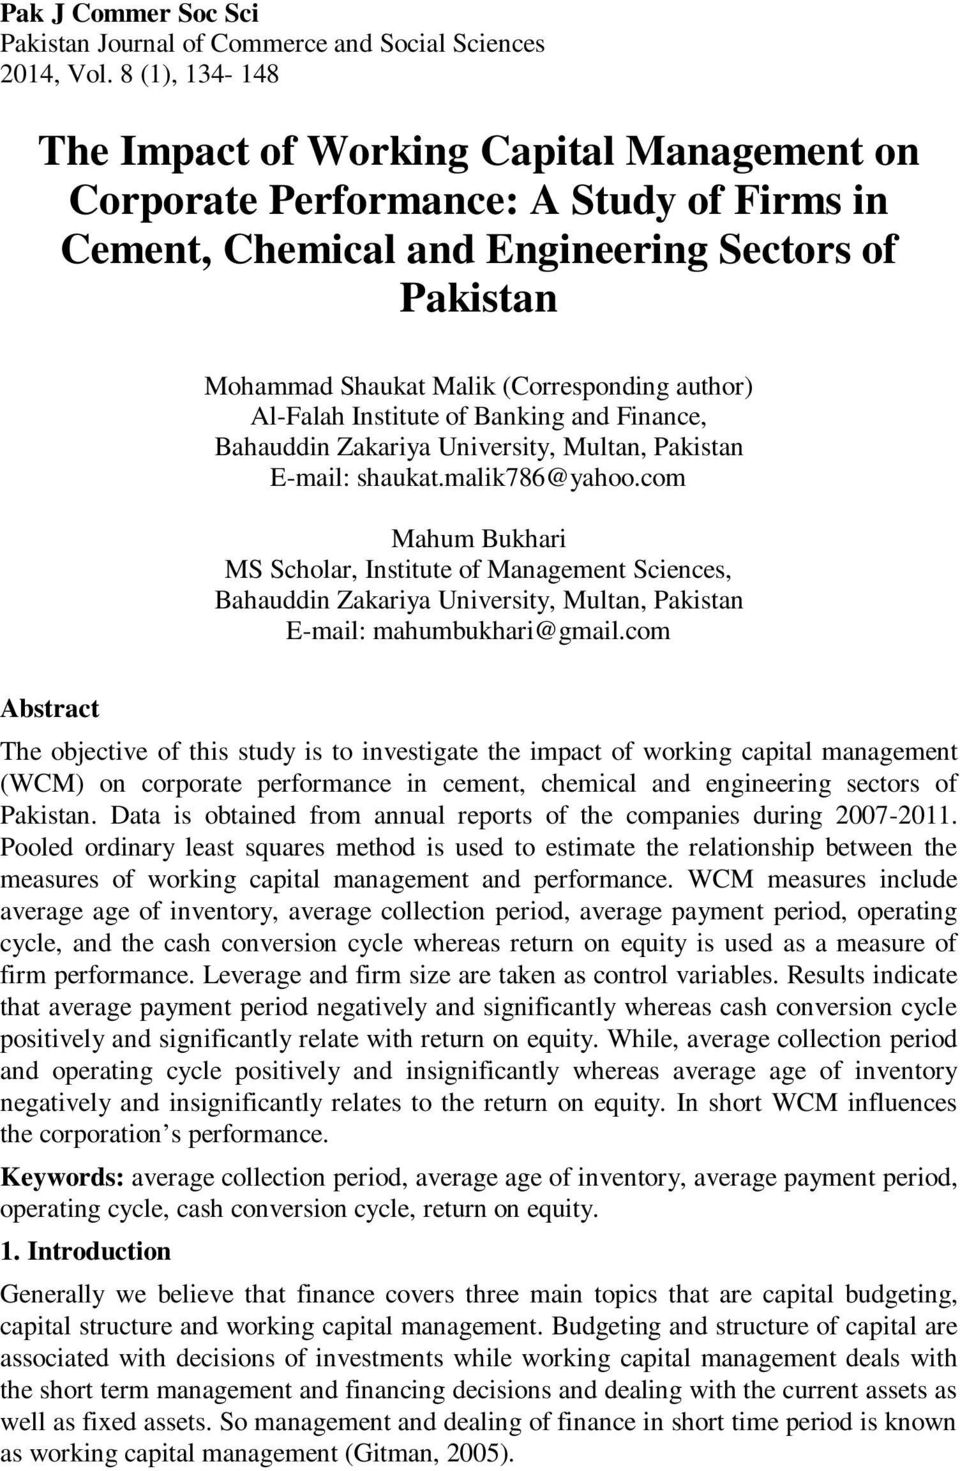 author) Al-Falah Institute of Banking and Finance, Bahauddin Zakariya University, Multan, Pakistan E-mail: shaukat.malik786@yahoo.